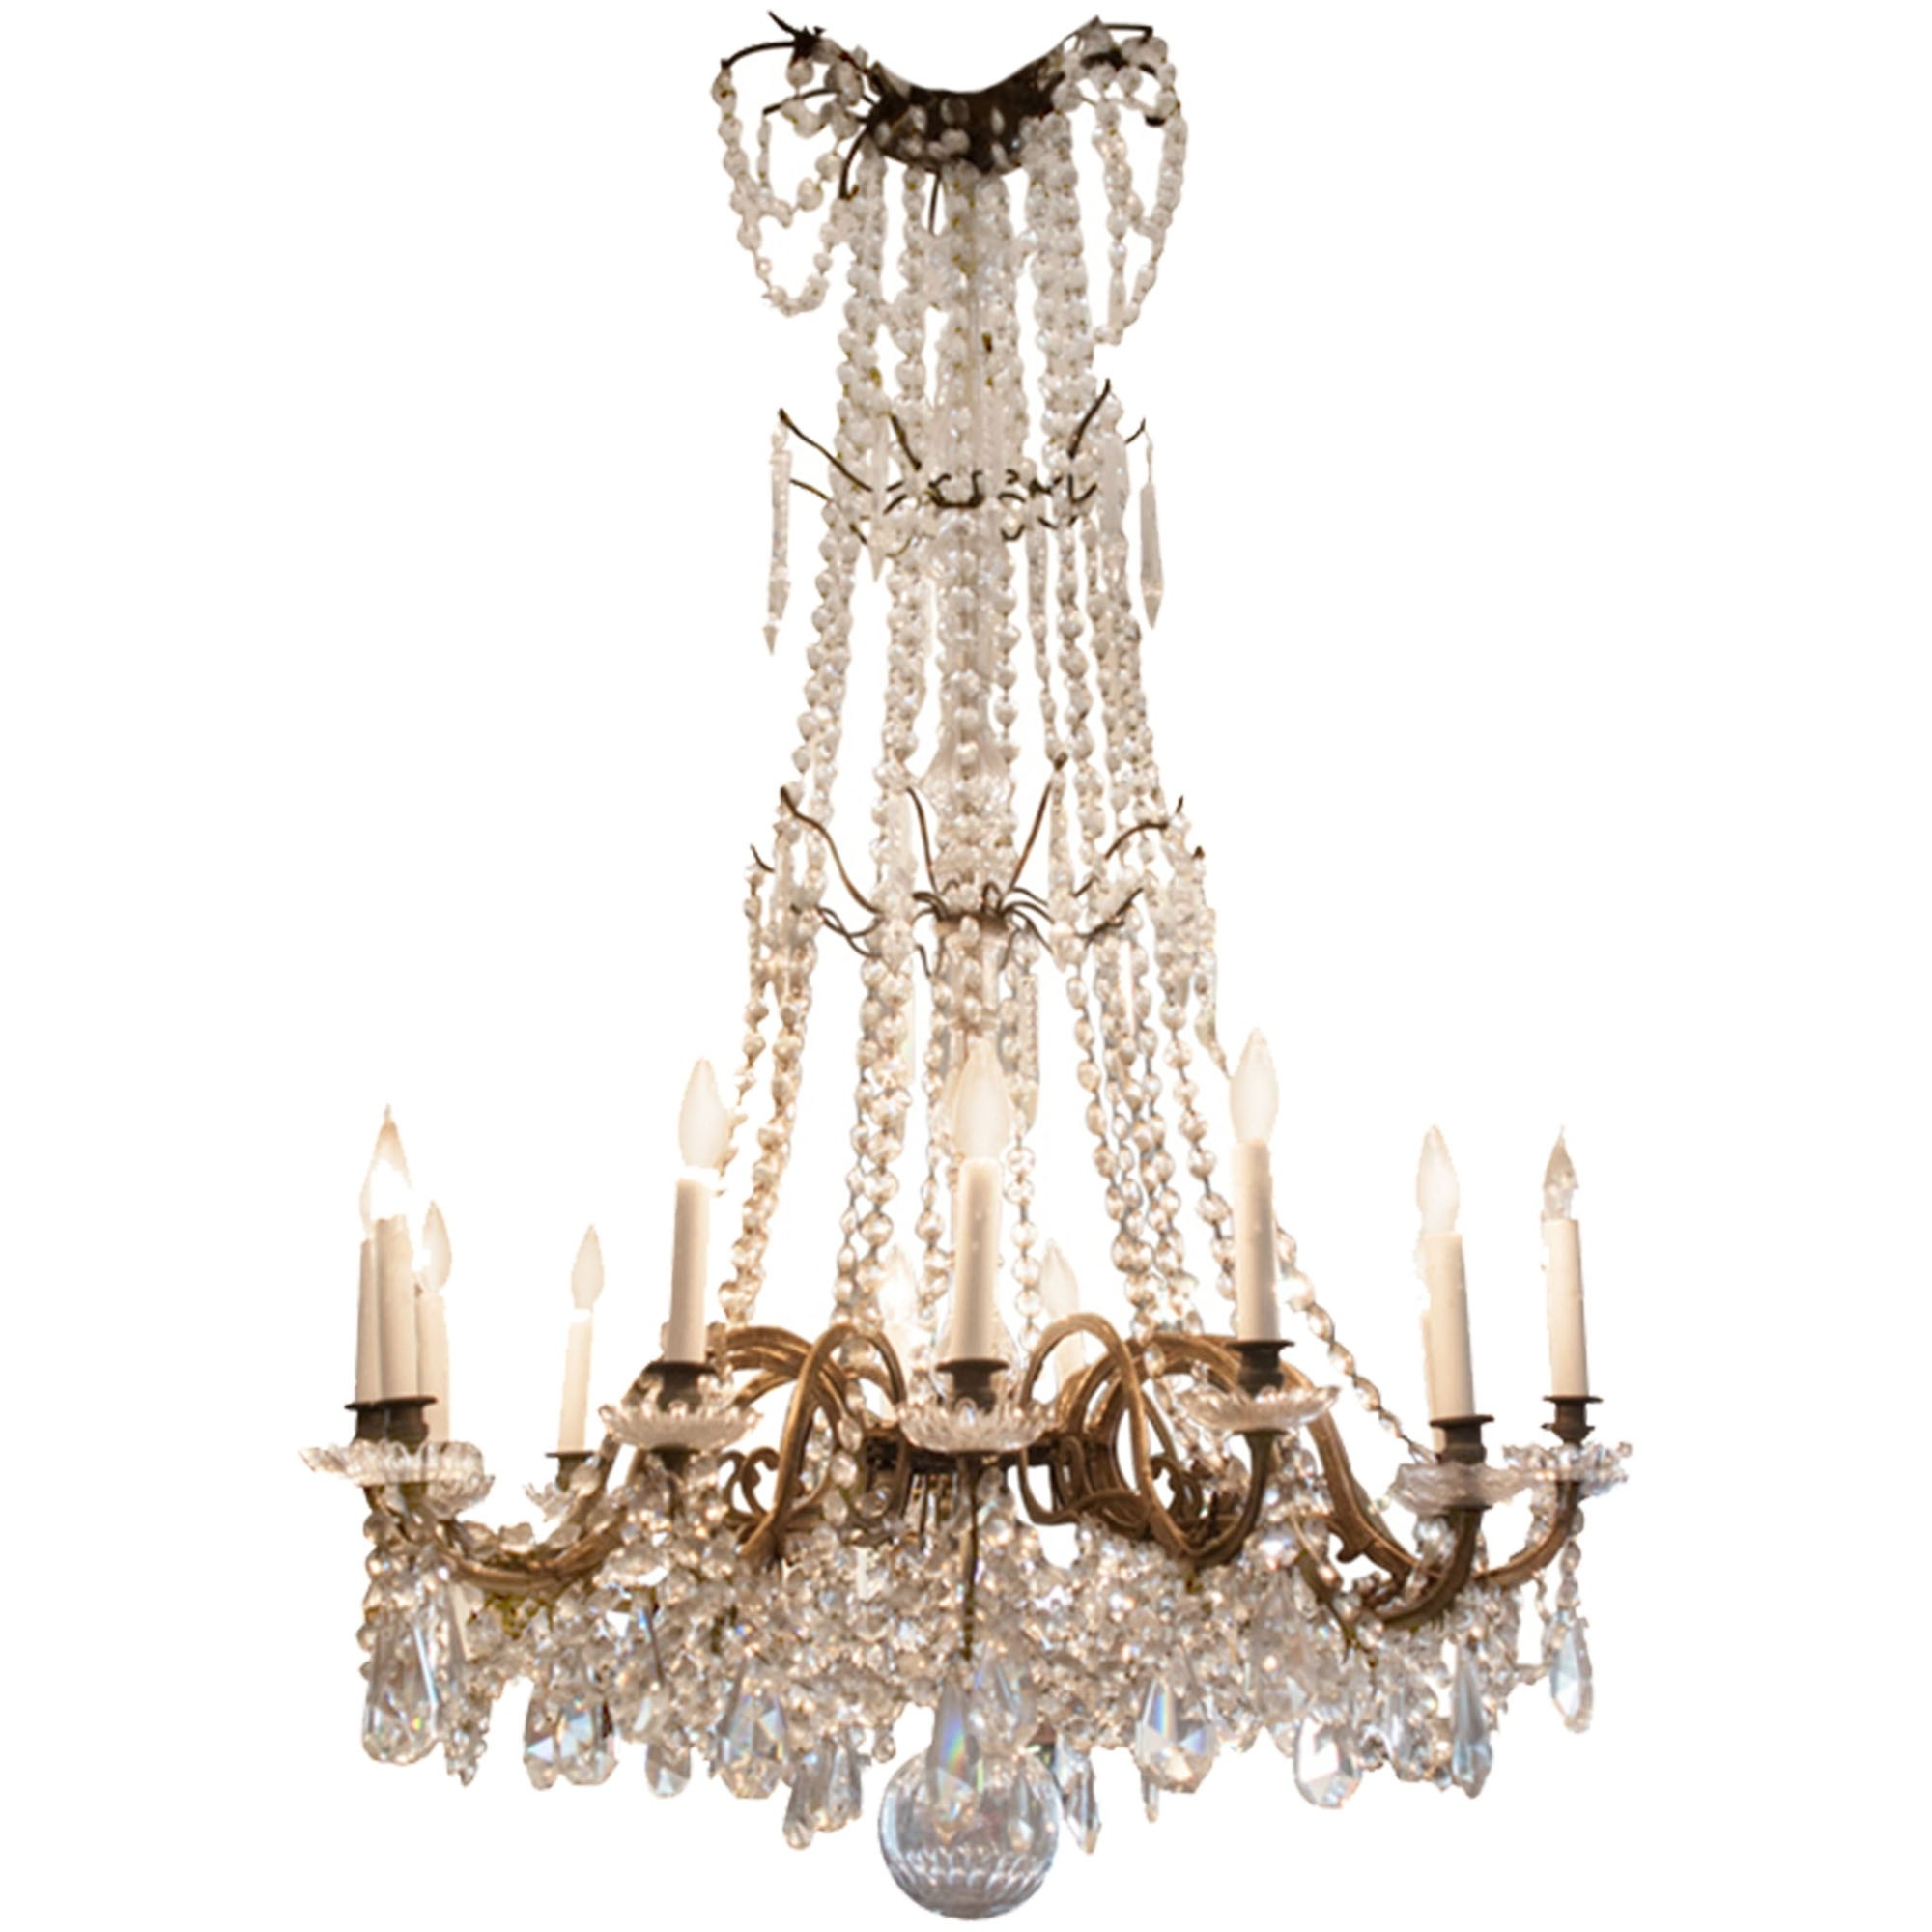 Most Recent French Style Chandelier – Chandelier Showroom With French Style Chandelier (View 17 of 20)